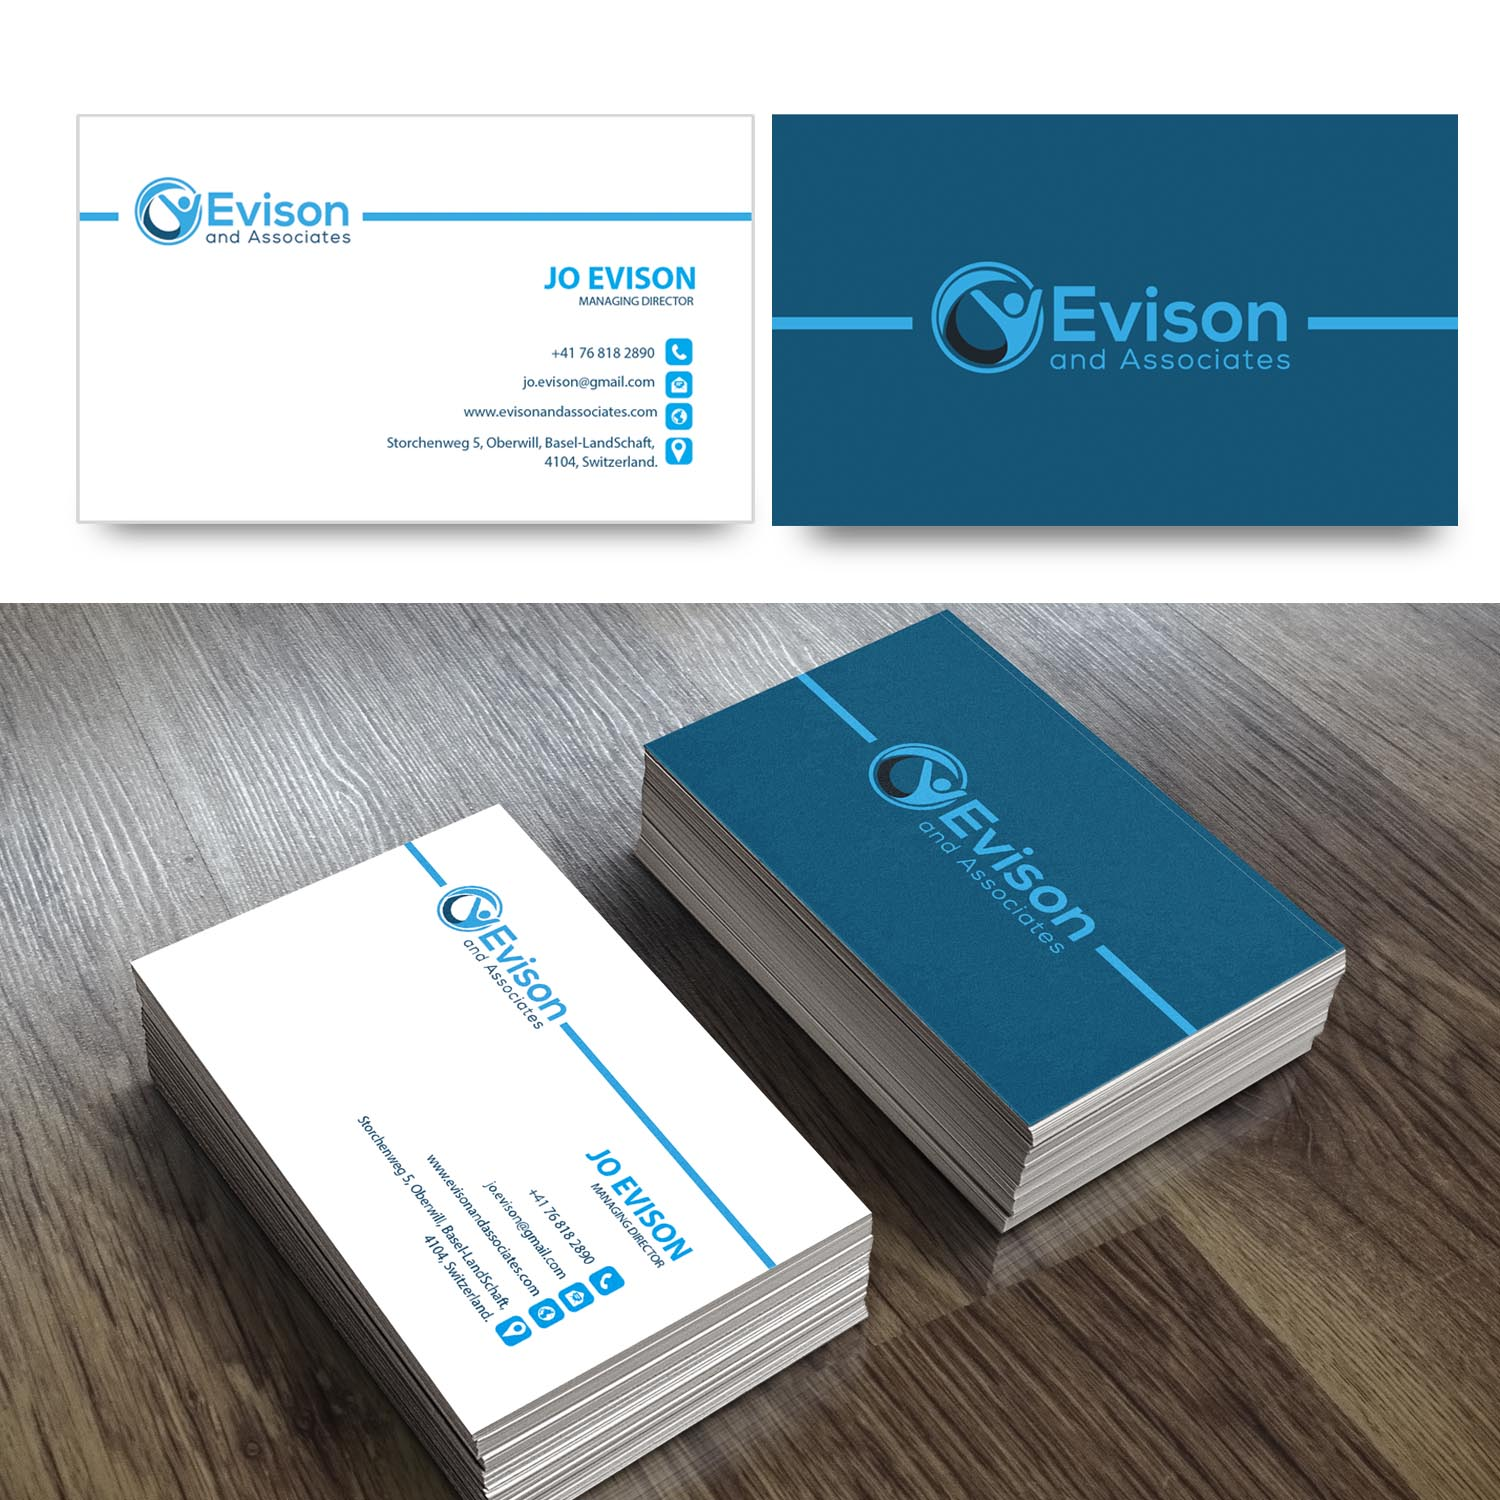 Serious modern business logo and business card design for acer logo and business card design by joshjessey for this project design 15946390 colourmoves Image collections